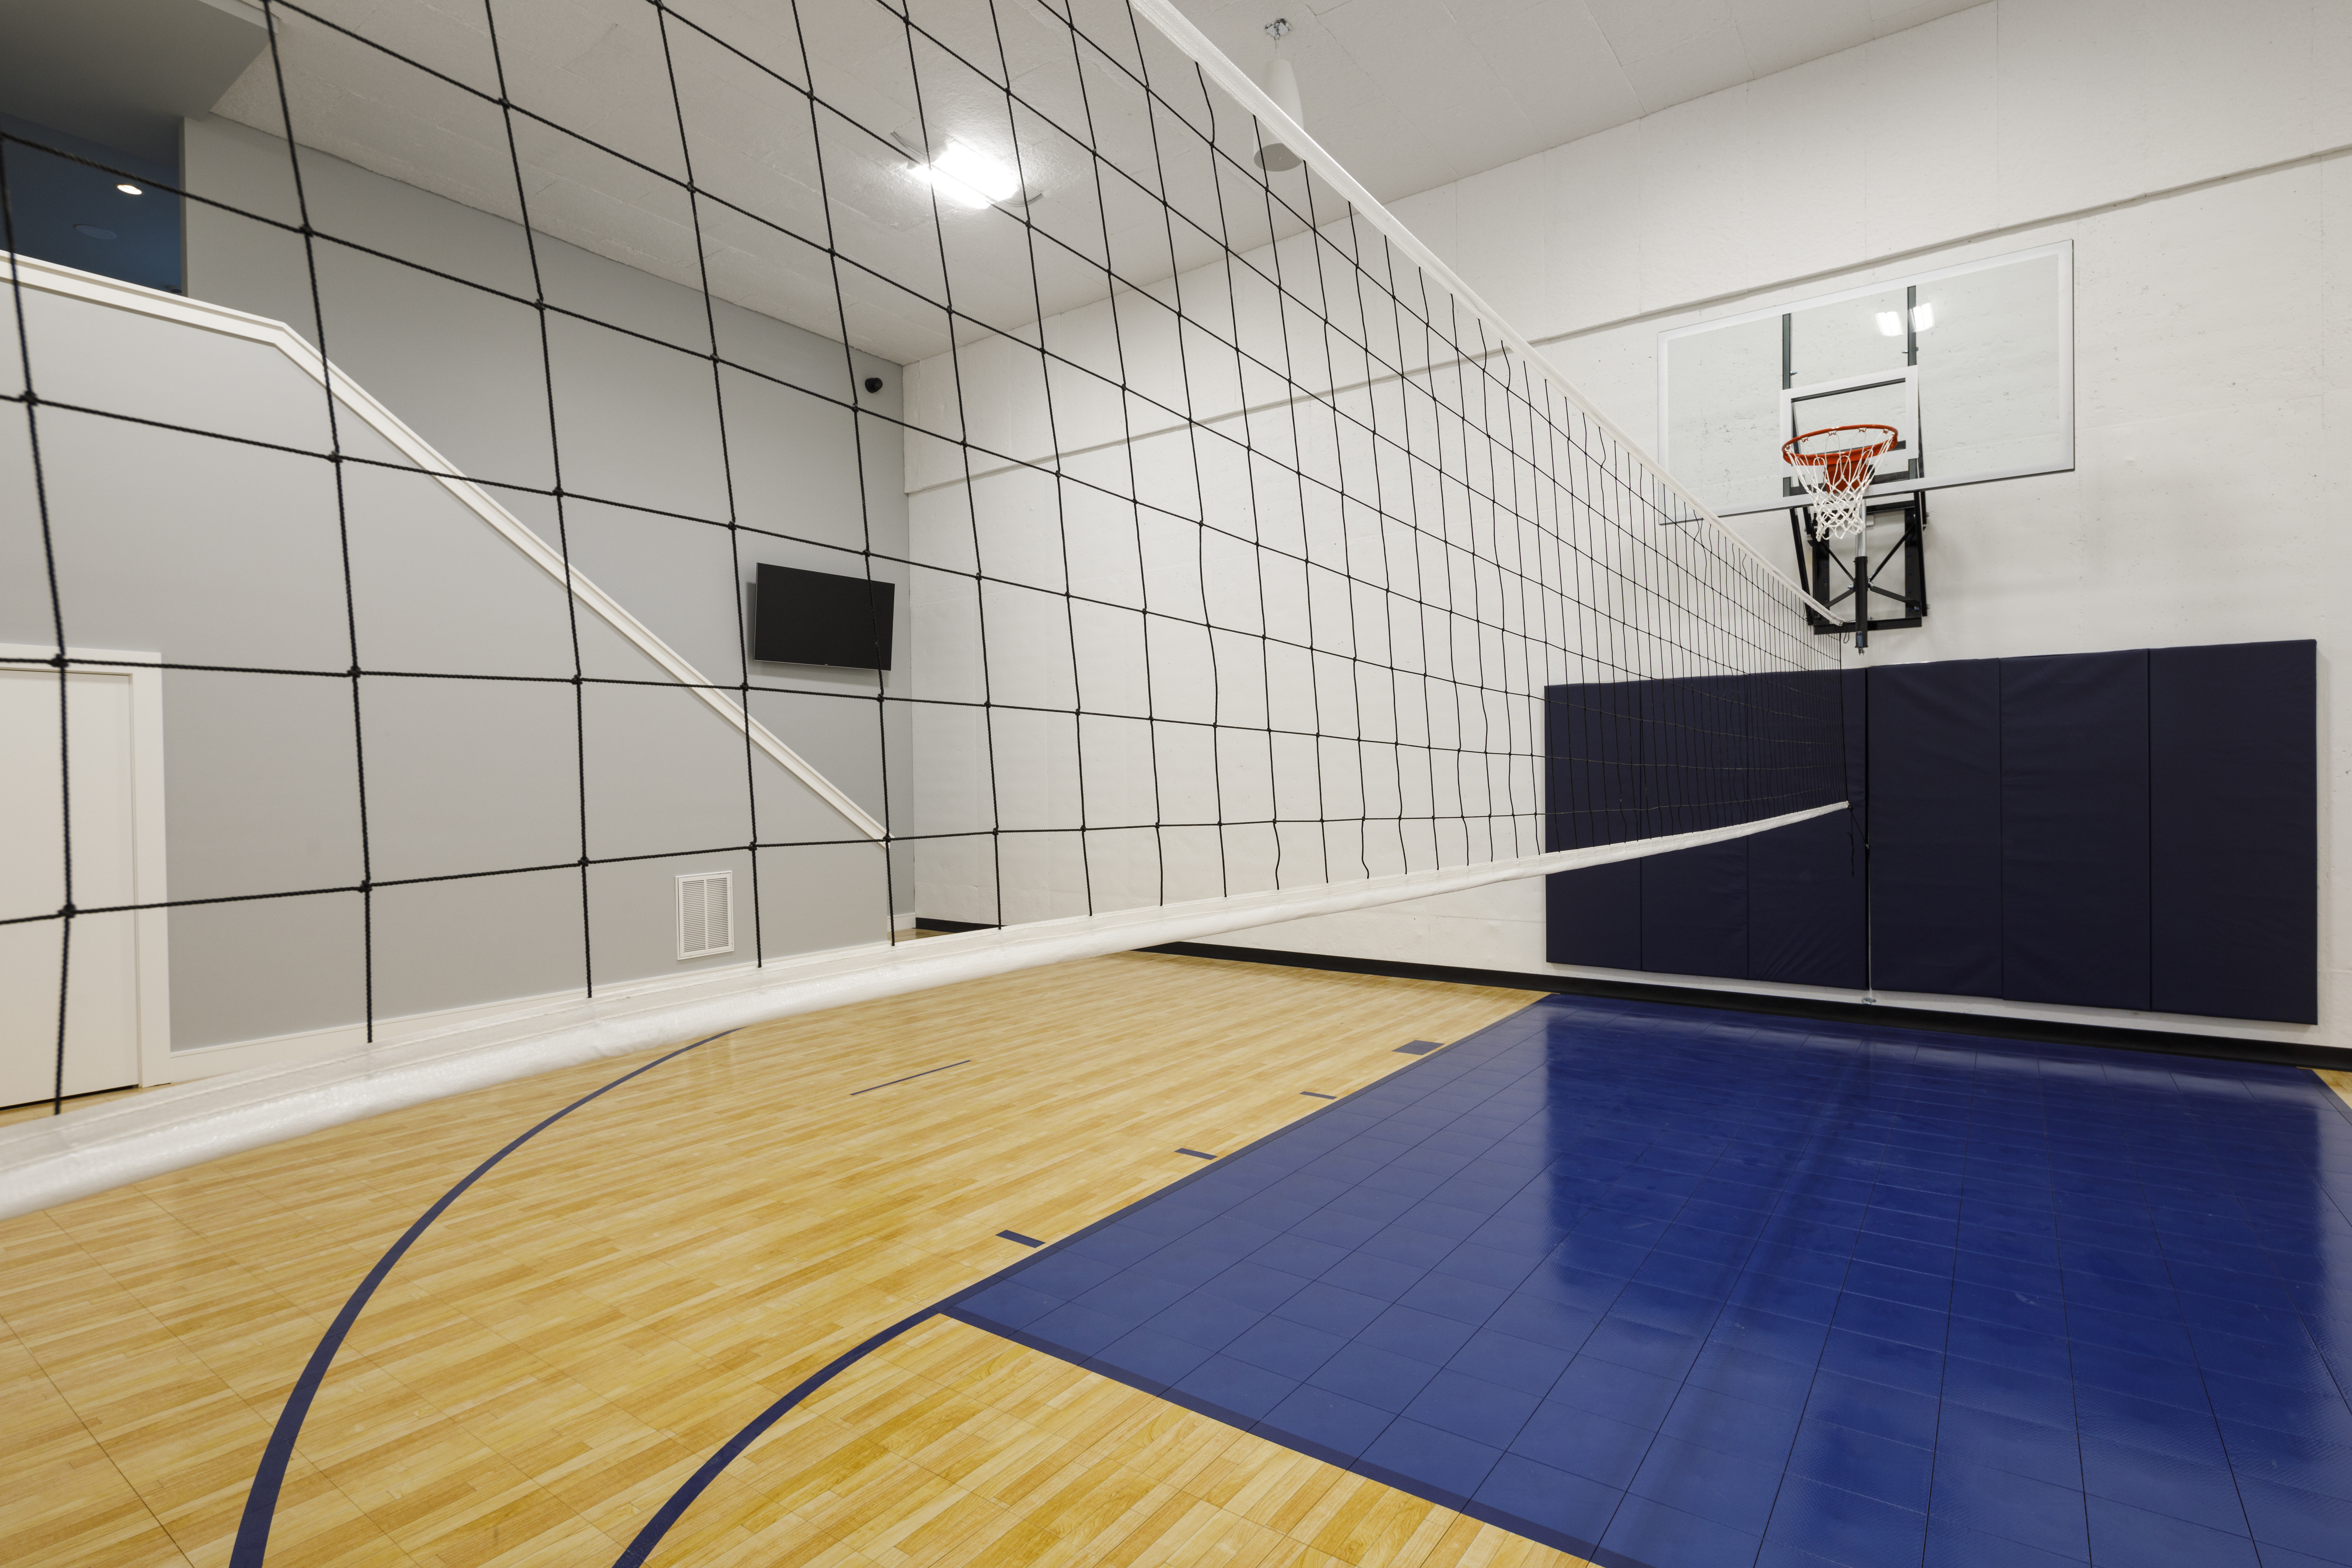 Sunfish Lane Sport Court